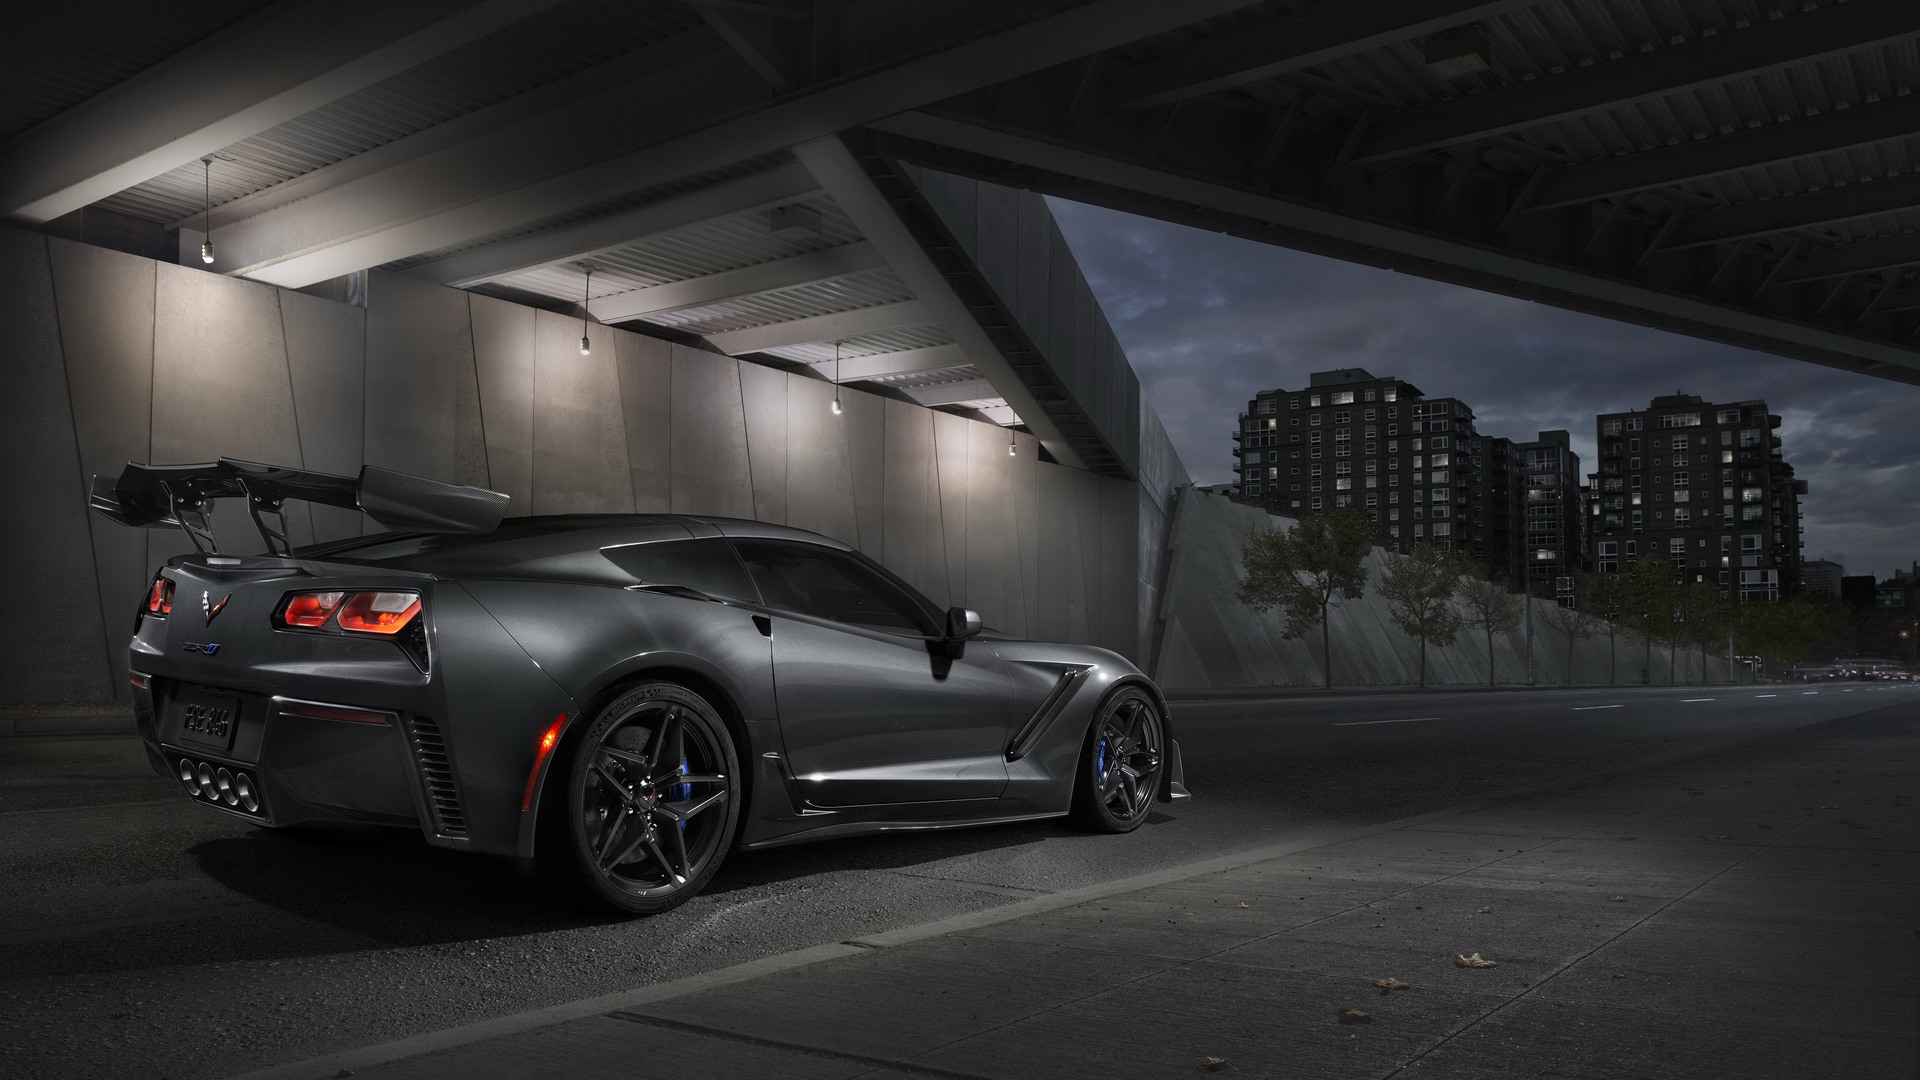 1920x1080 Chevrolet Corvette ZR1 2019 Laptop Full HD 1080P 4k Wallpapers Images Backgrounds Photos And Pictures